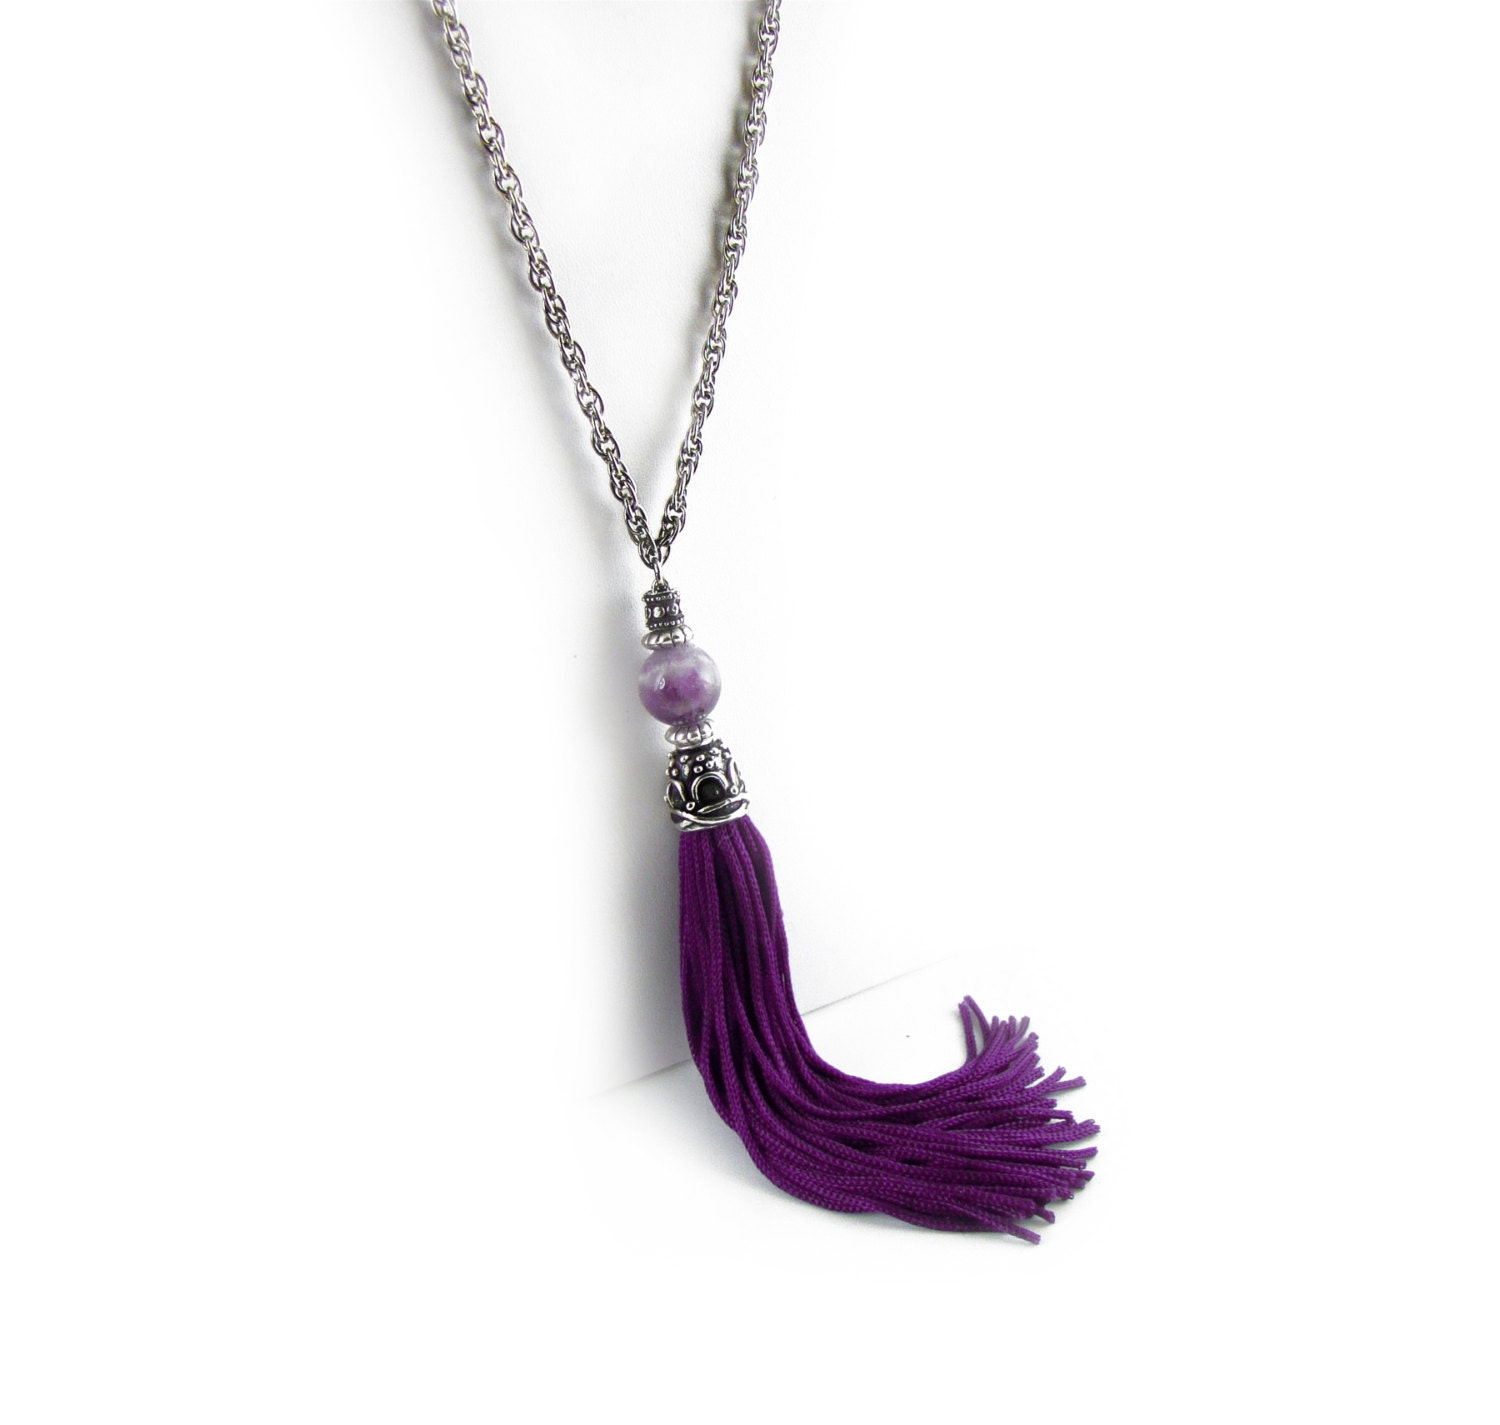 sahuri alternate necklace os product necklaces convertible view size tassel